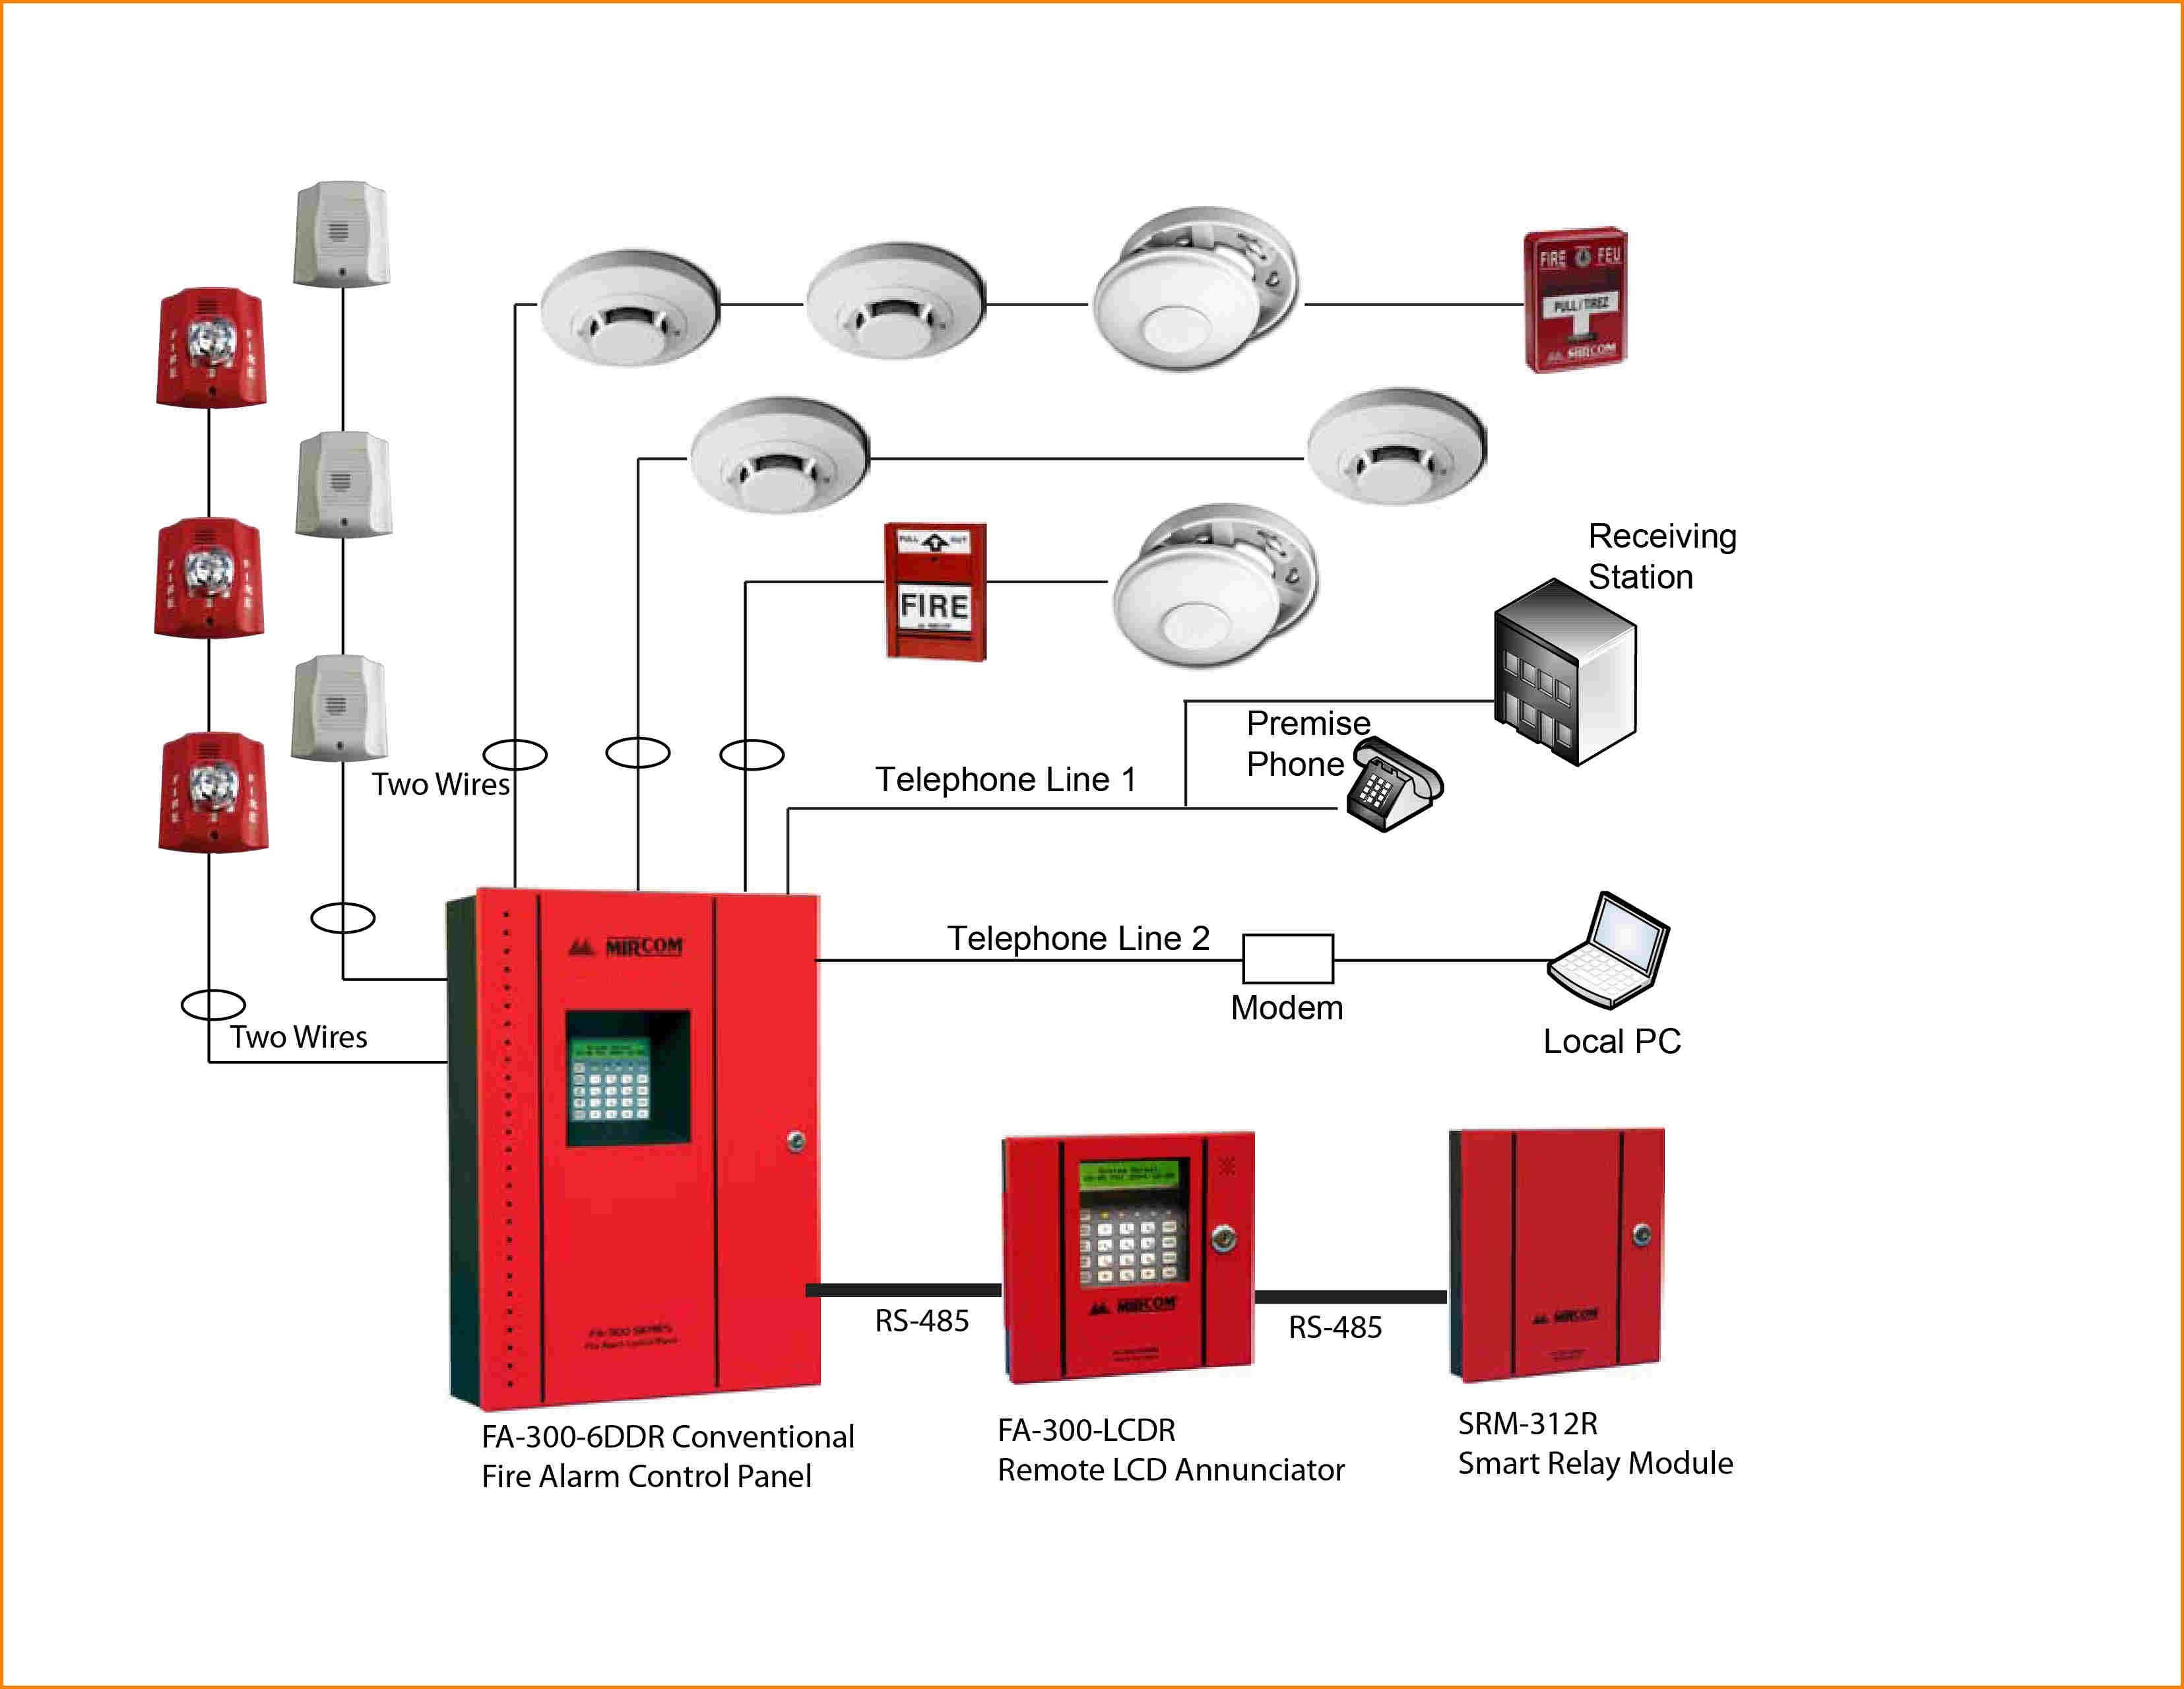 fire alarm elevator recall wiring diagram gallery. Black Bedroom Furniture Sets. Home Design Ideas